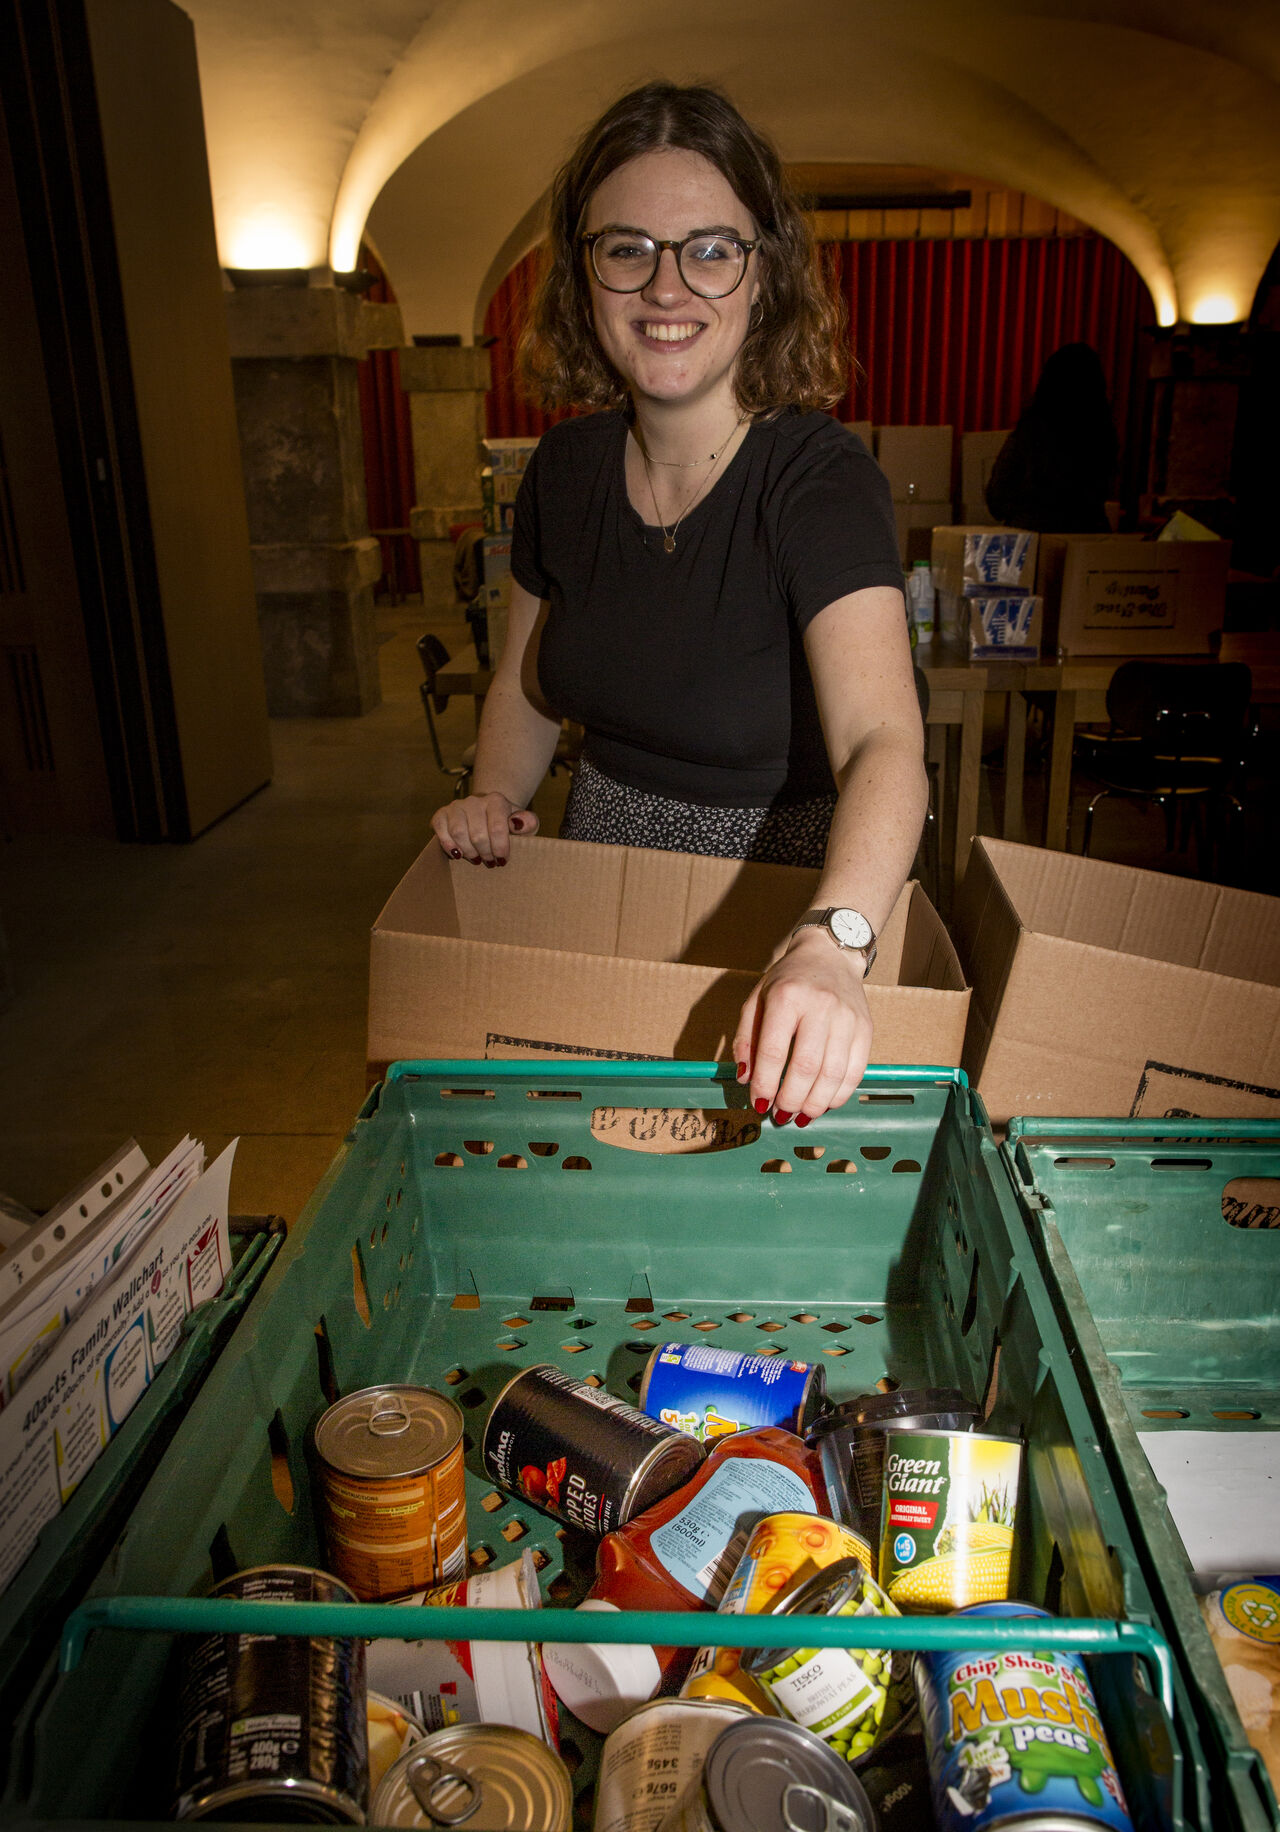 Image of a smiling female with a tray of cans and tins at the food bank